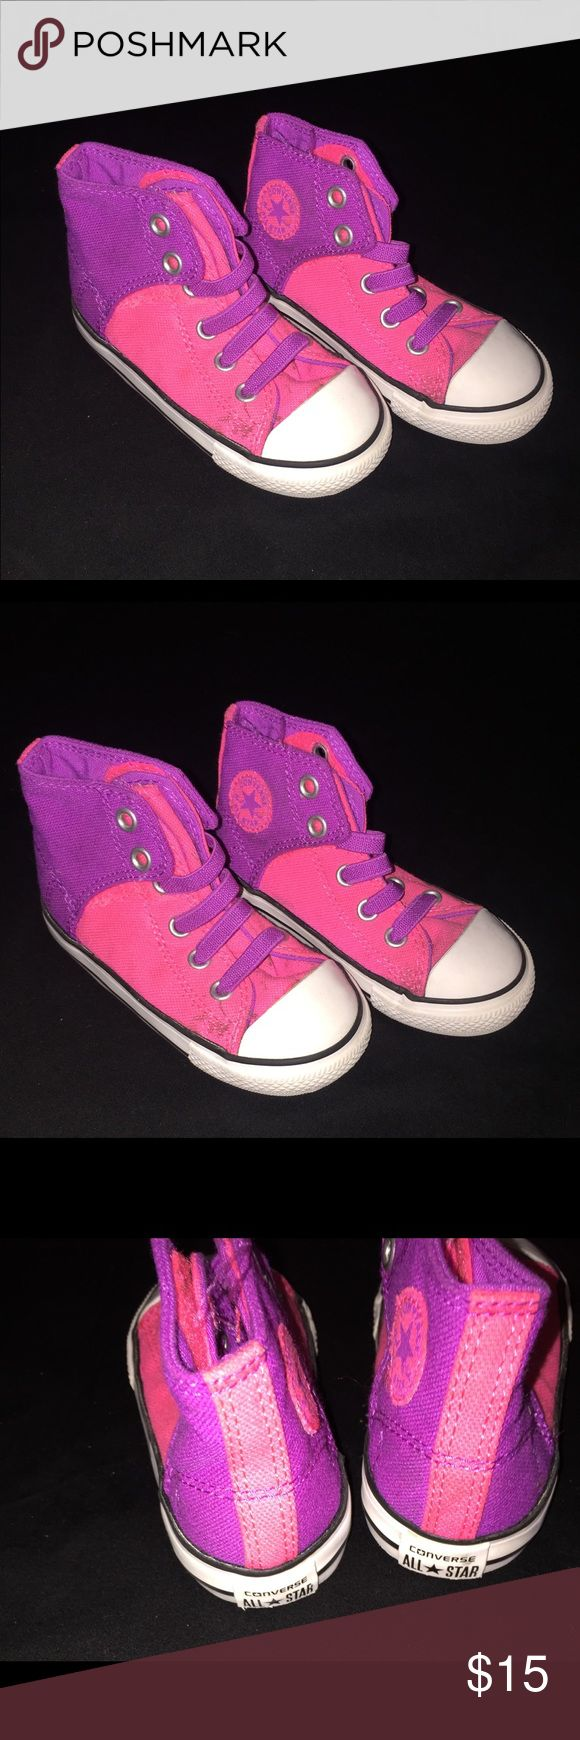 Toddler Girl Converse All Star Shoes Size 7  Toddler Girl Converse All Star Shoes Size 7 in Good Condition. There are 2 Spots on the top of the shoes but shoes are still very cute. Please look at pics  Converse Shoes Sneakers